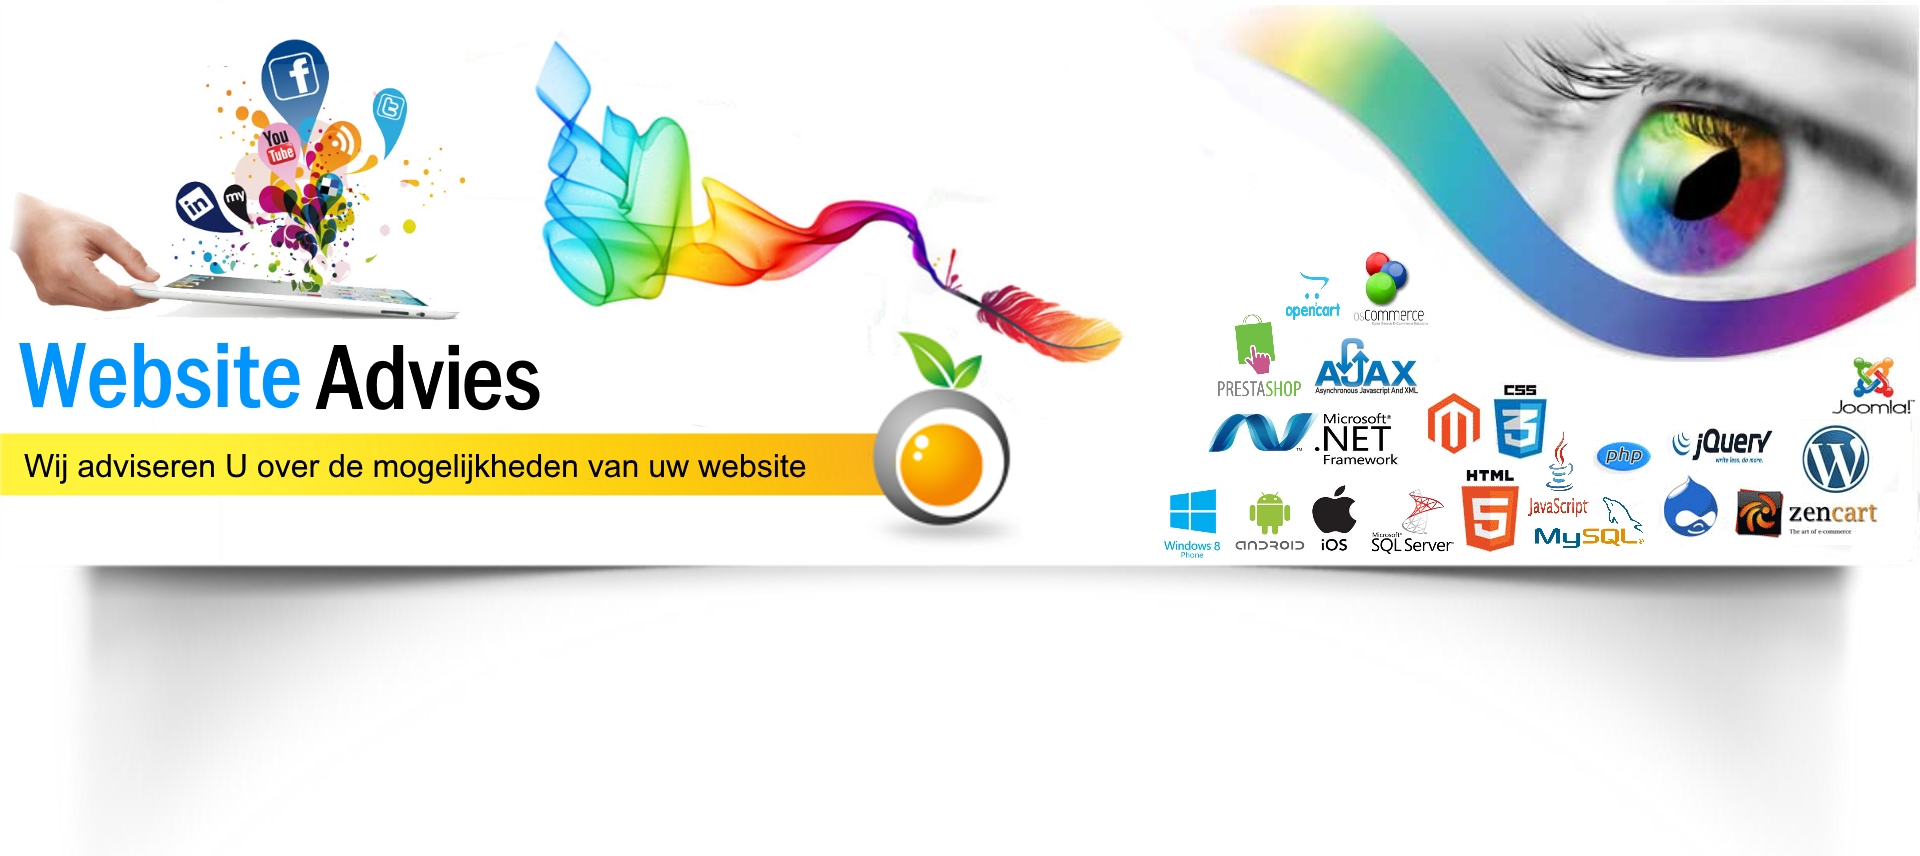 Nemesis Webdesign - Website Analyse en Advies